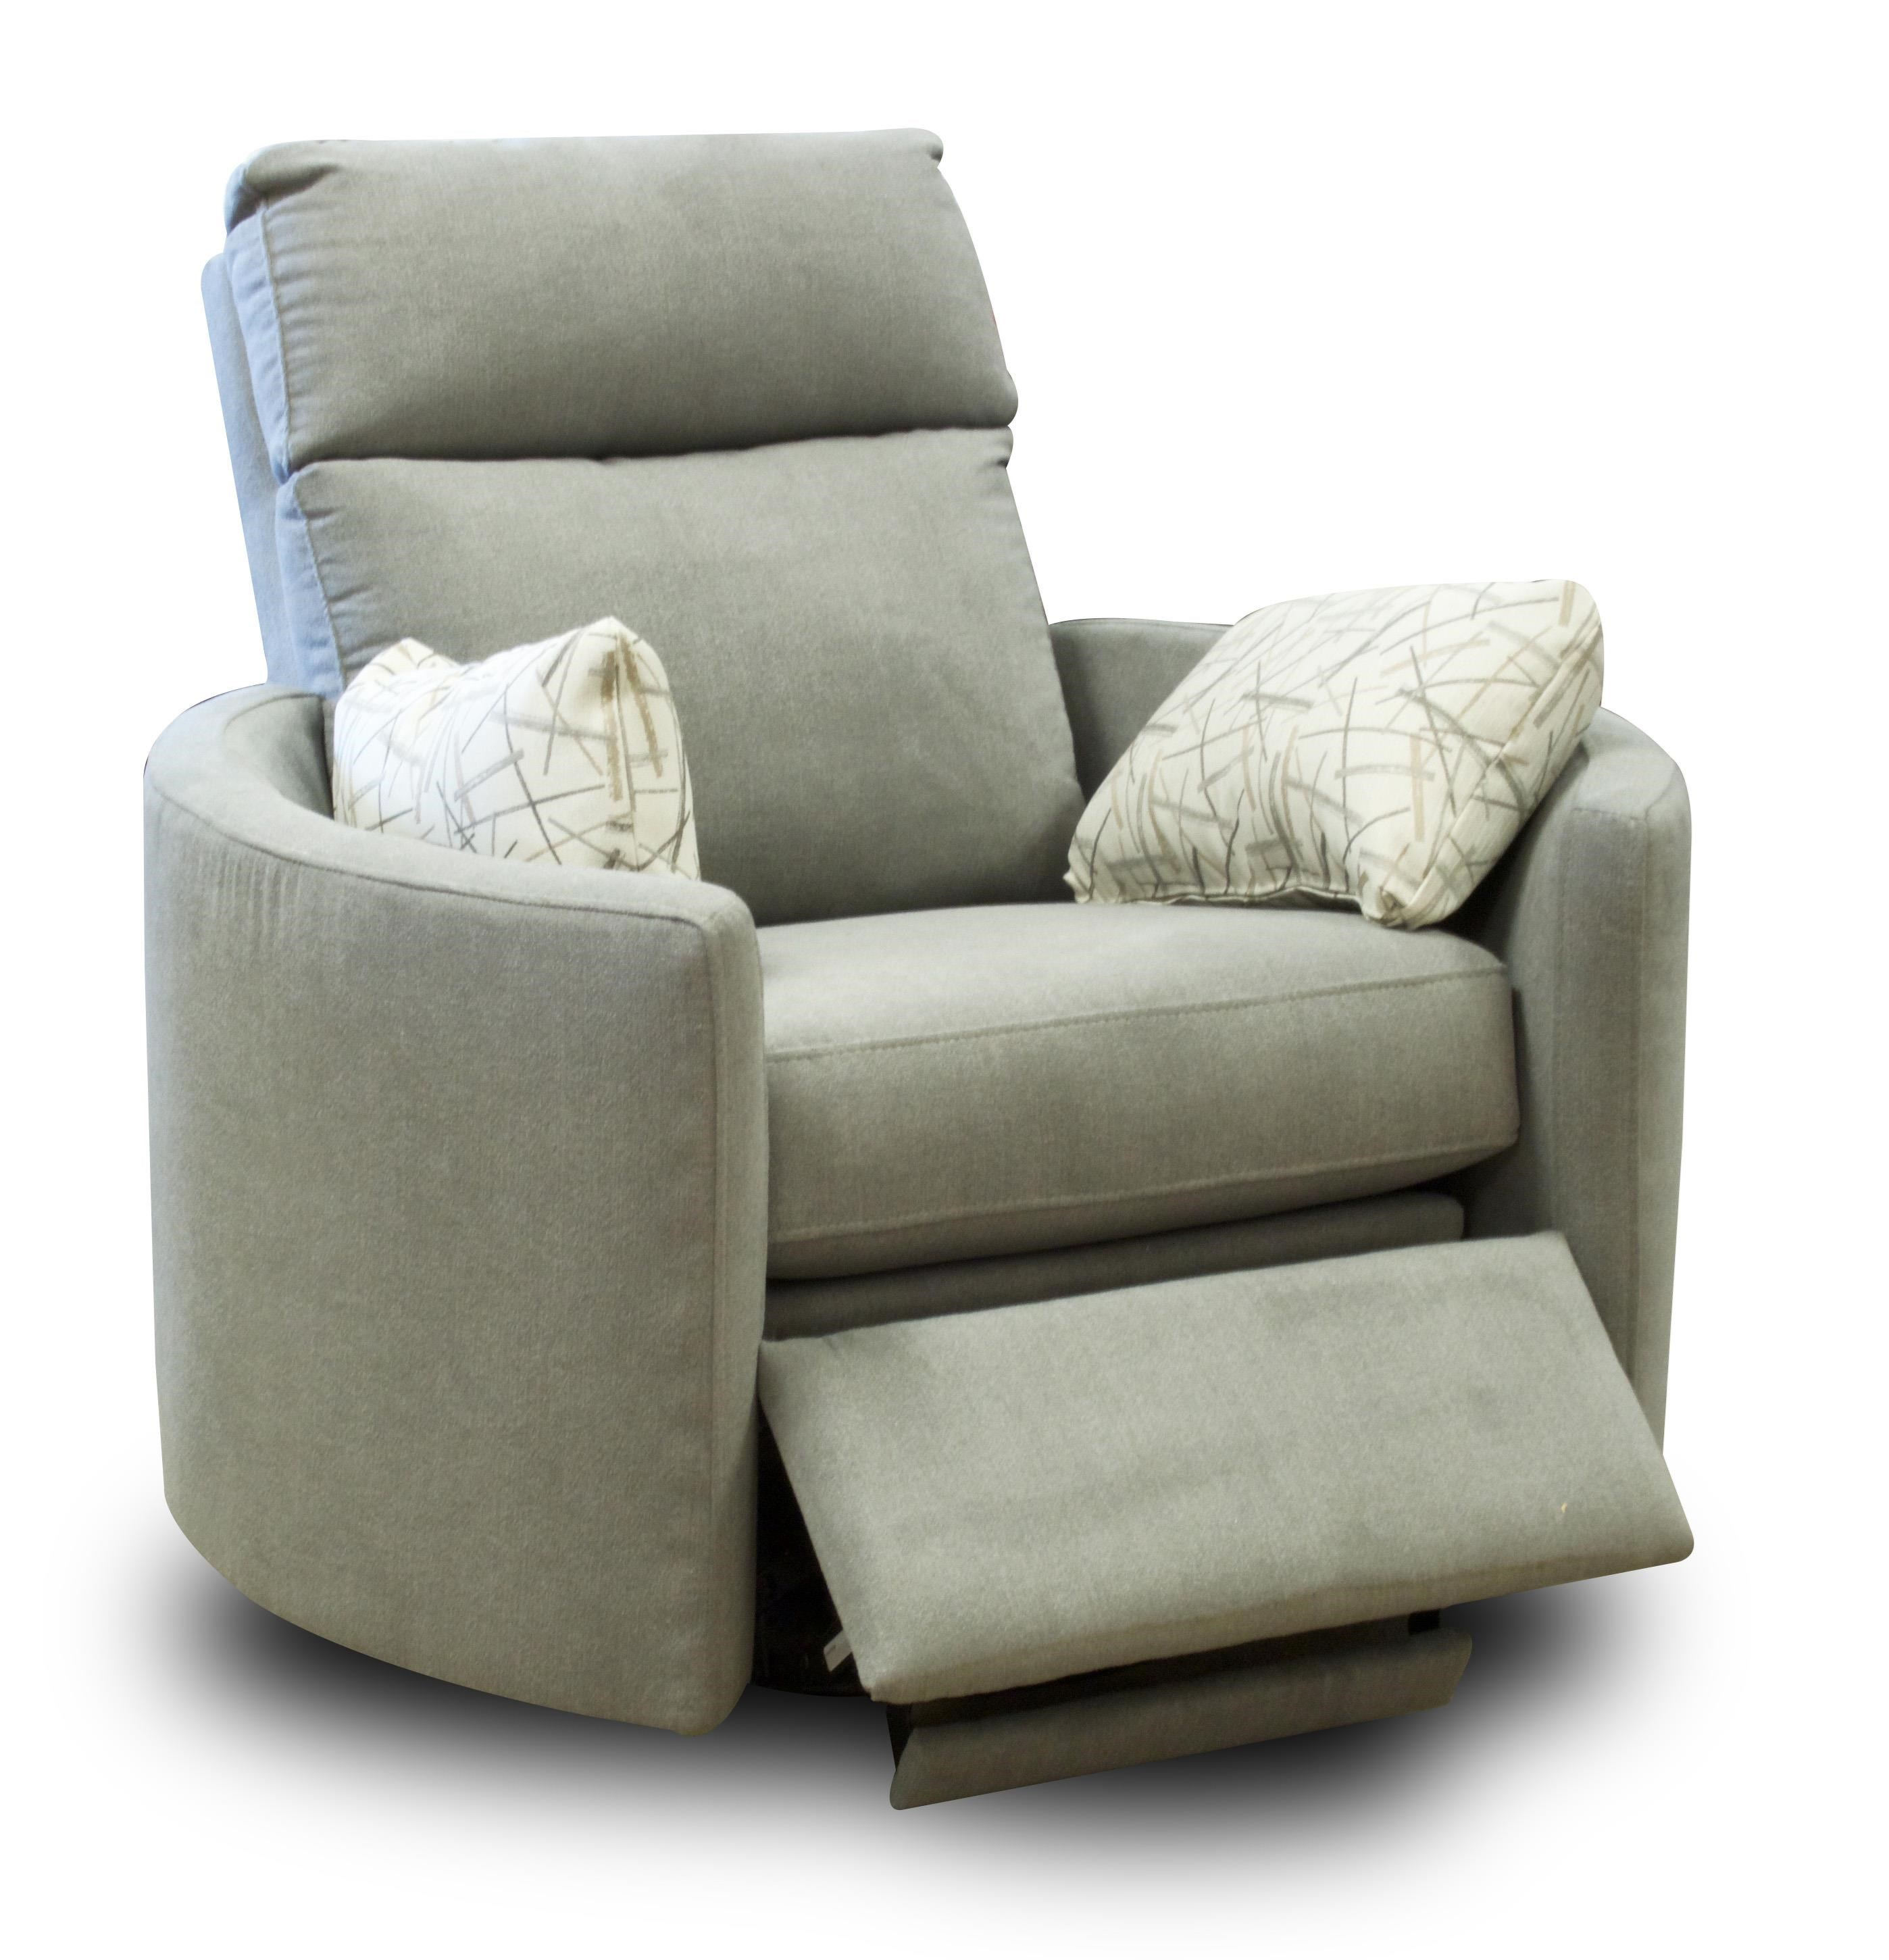 Cagney Reclining Swivel Chair